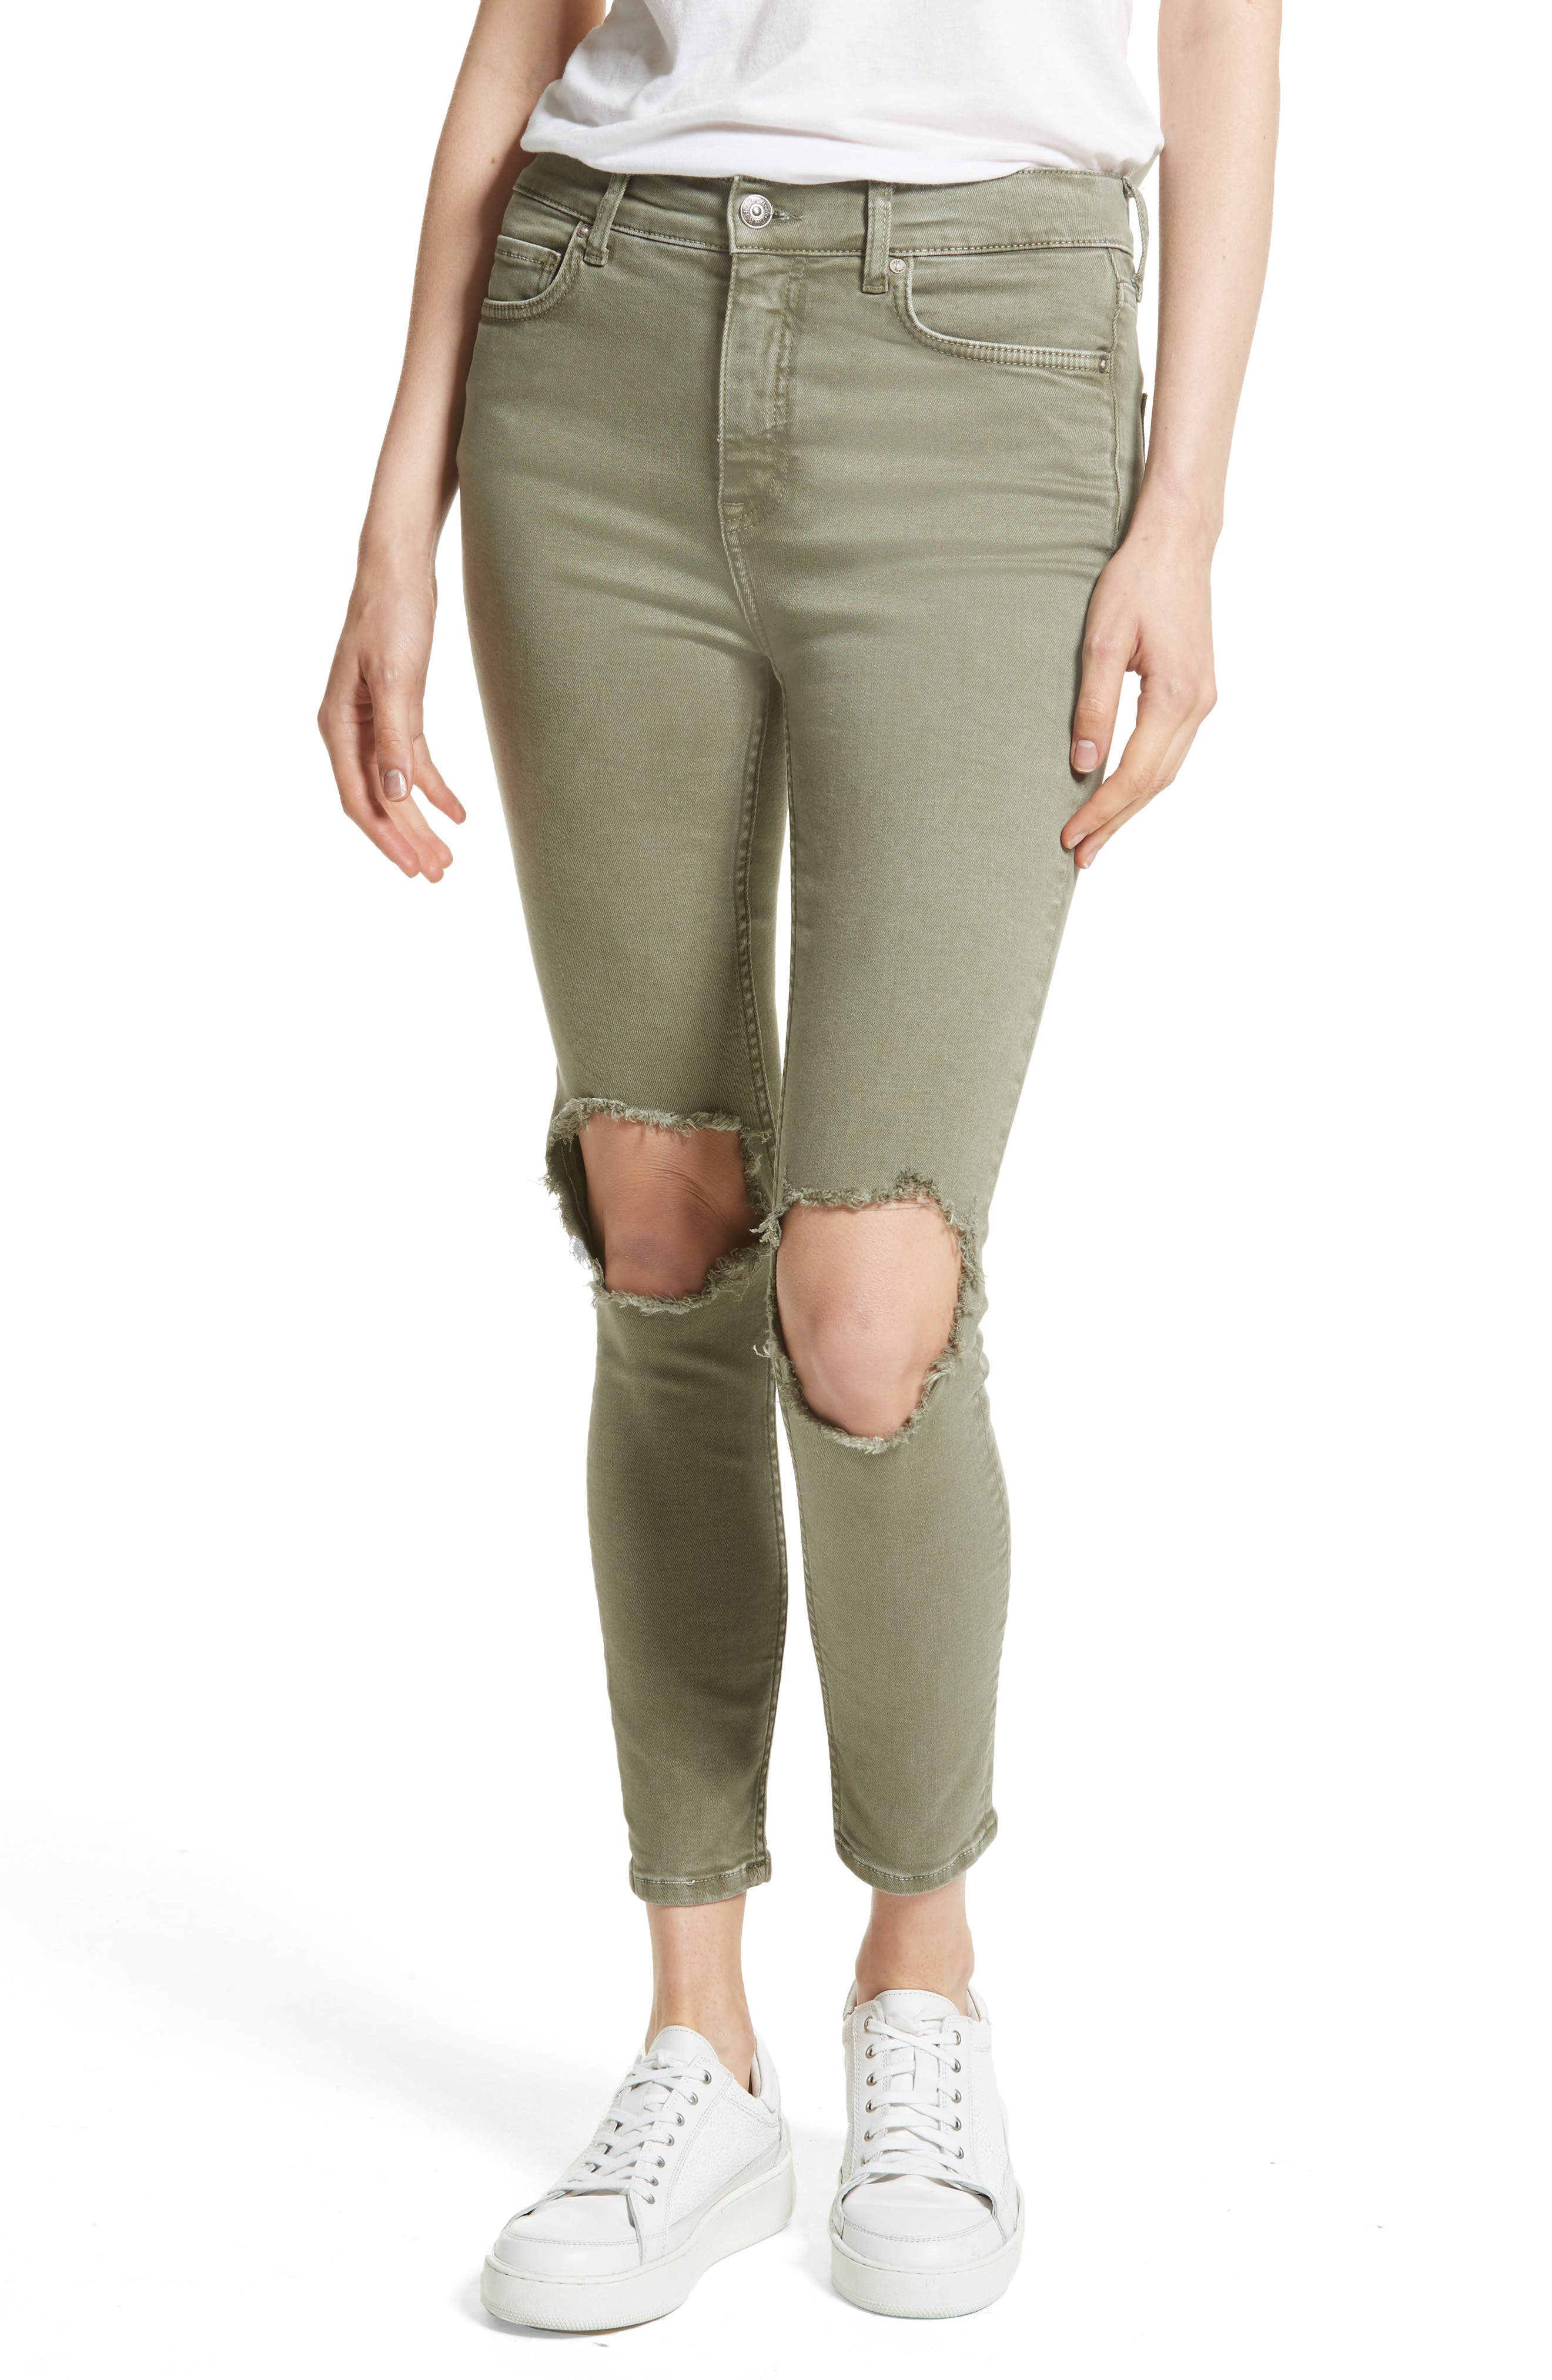 FREE PEOPLE We the Free by Free People High Rise Busted Knee Skinny Jeans, Main, color, 303